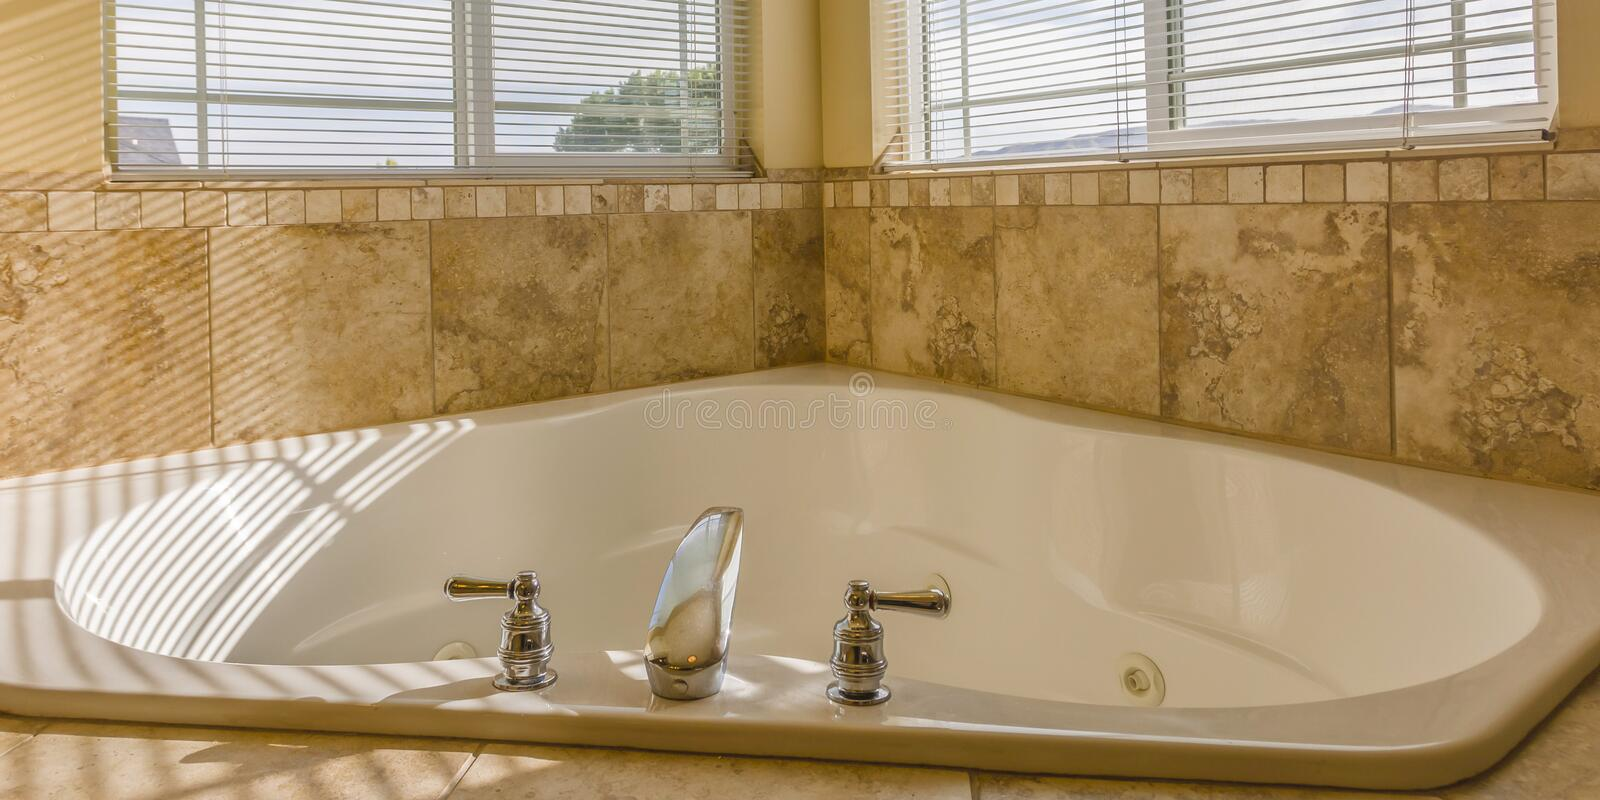 Heart shaped bathtub with jets inside a bathroom. Close up of a bathtub inside a bathroom with sunlight pouring in through the glass windows. The bathtub is royalty free stock photo